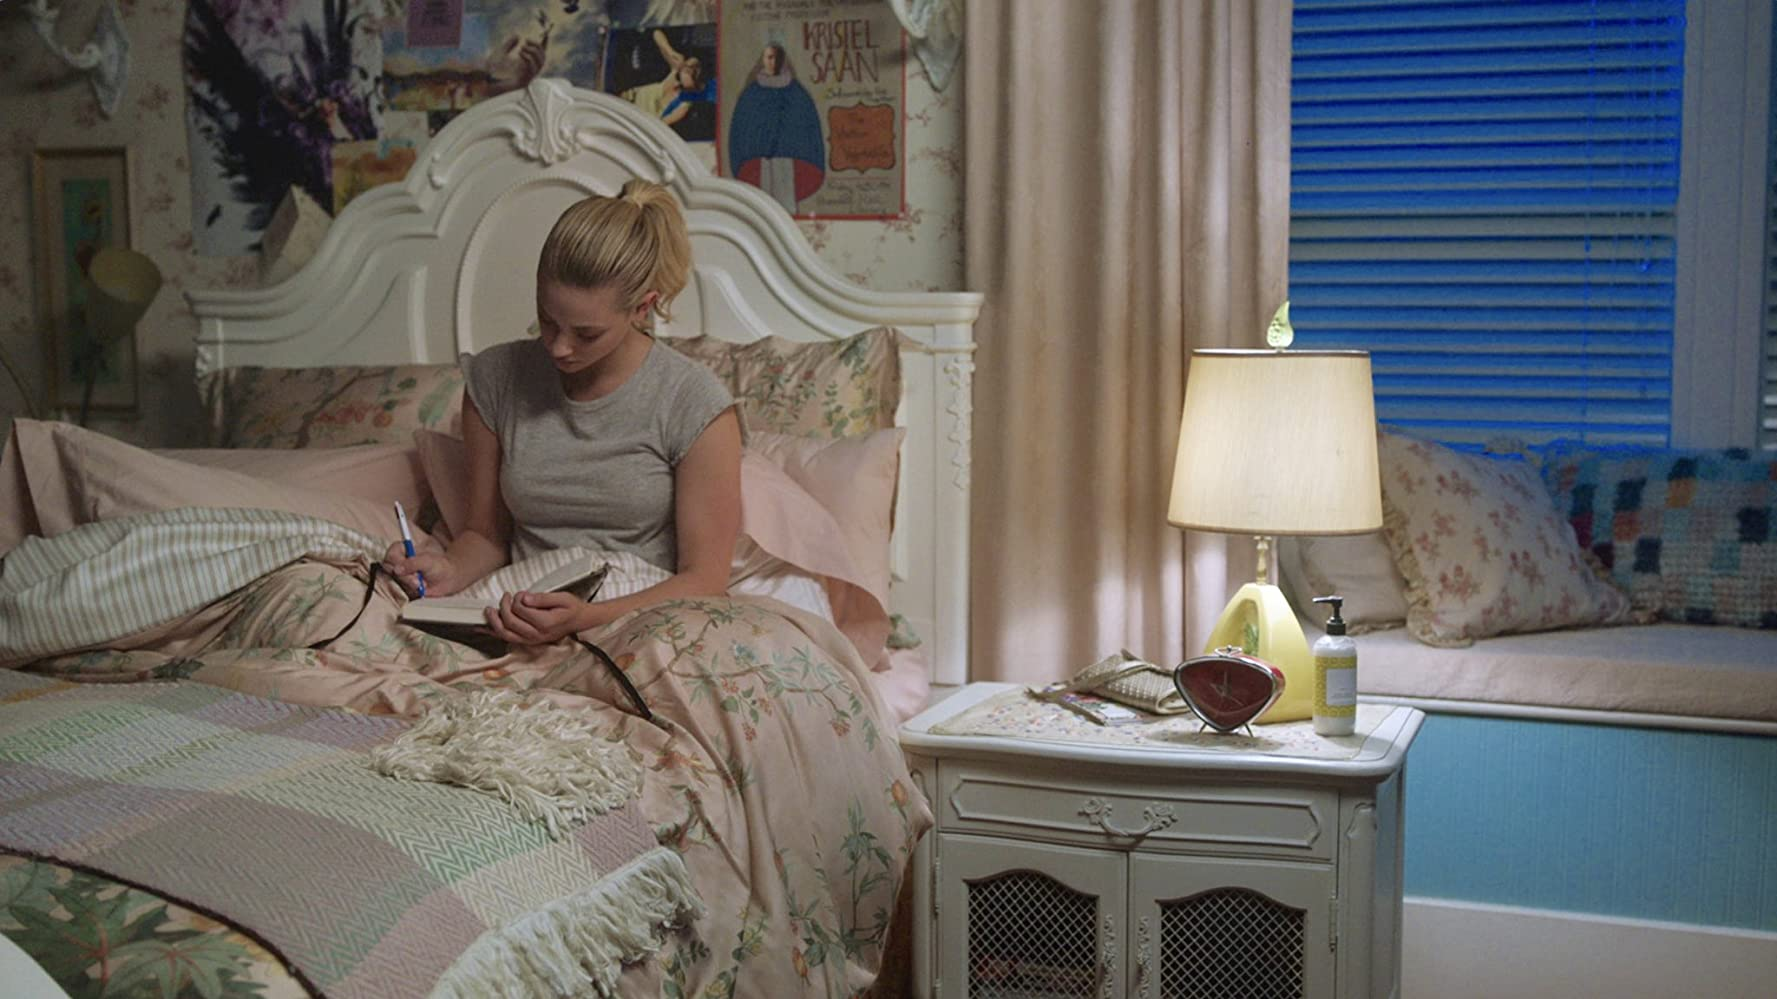 Lili Reinhart in Riverdale (2016)